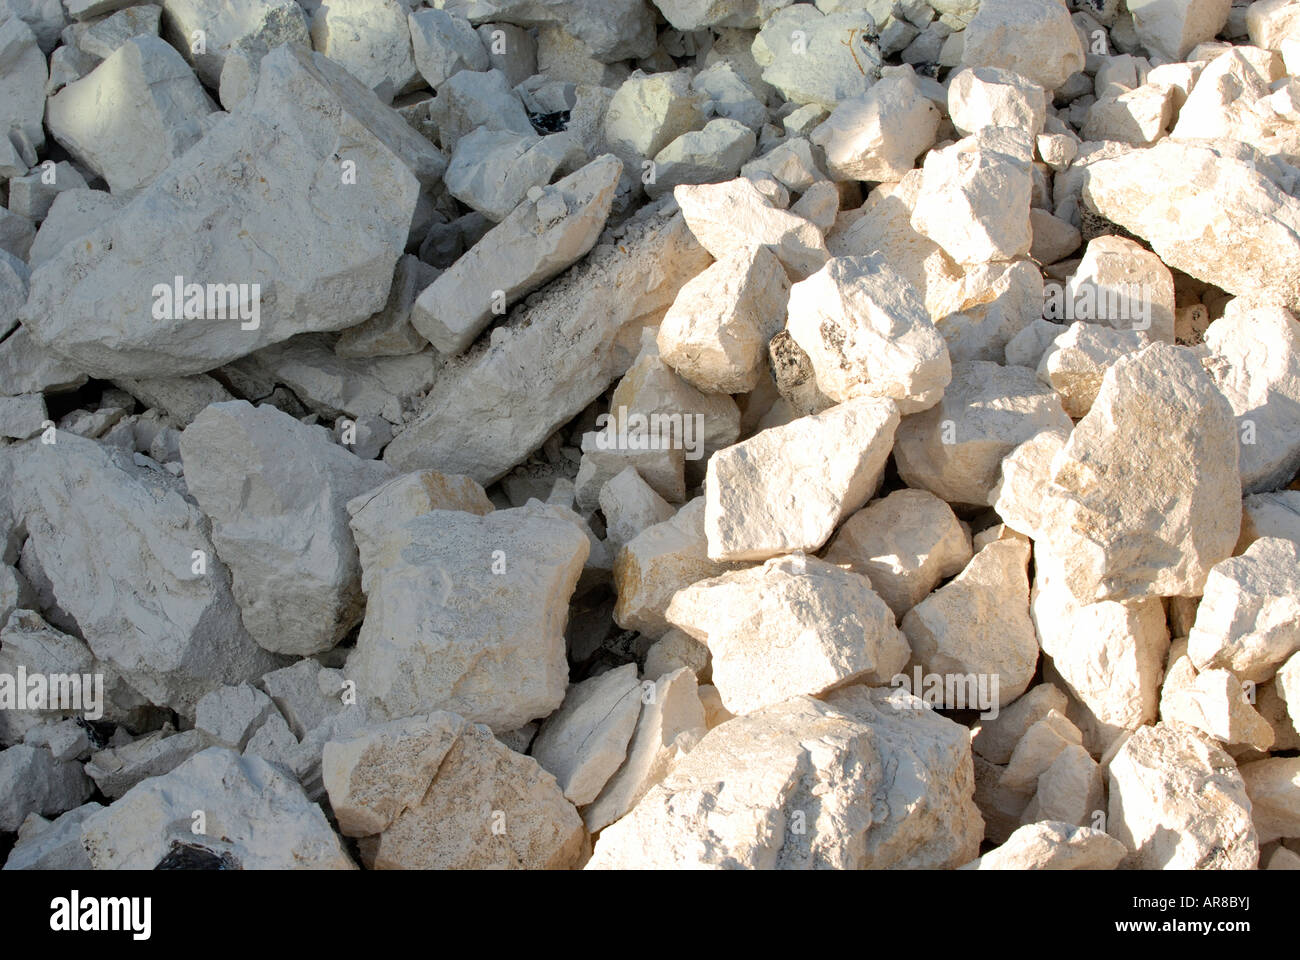 boulders stones of chalk rocks hardcore white in colour in a pile making a decorative background for text in sunlight - Stock Image